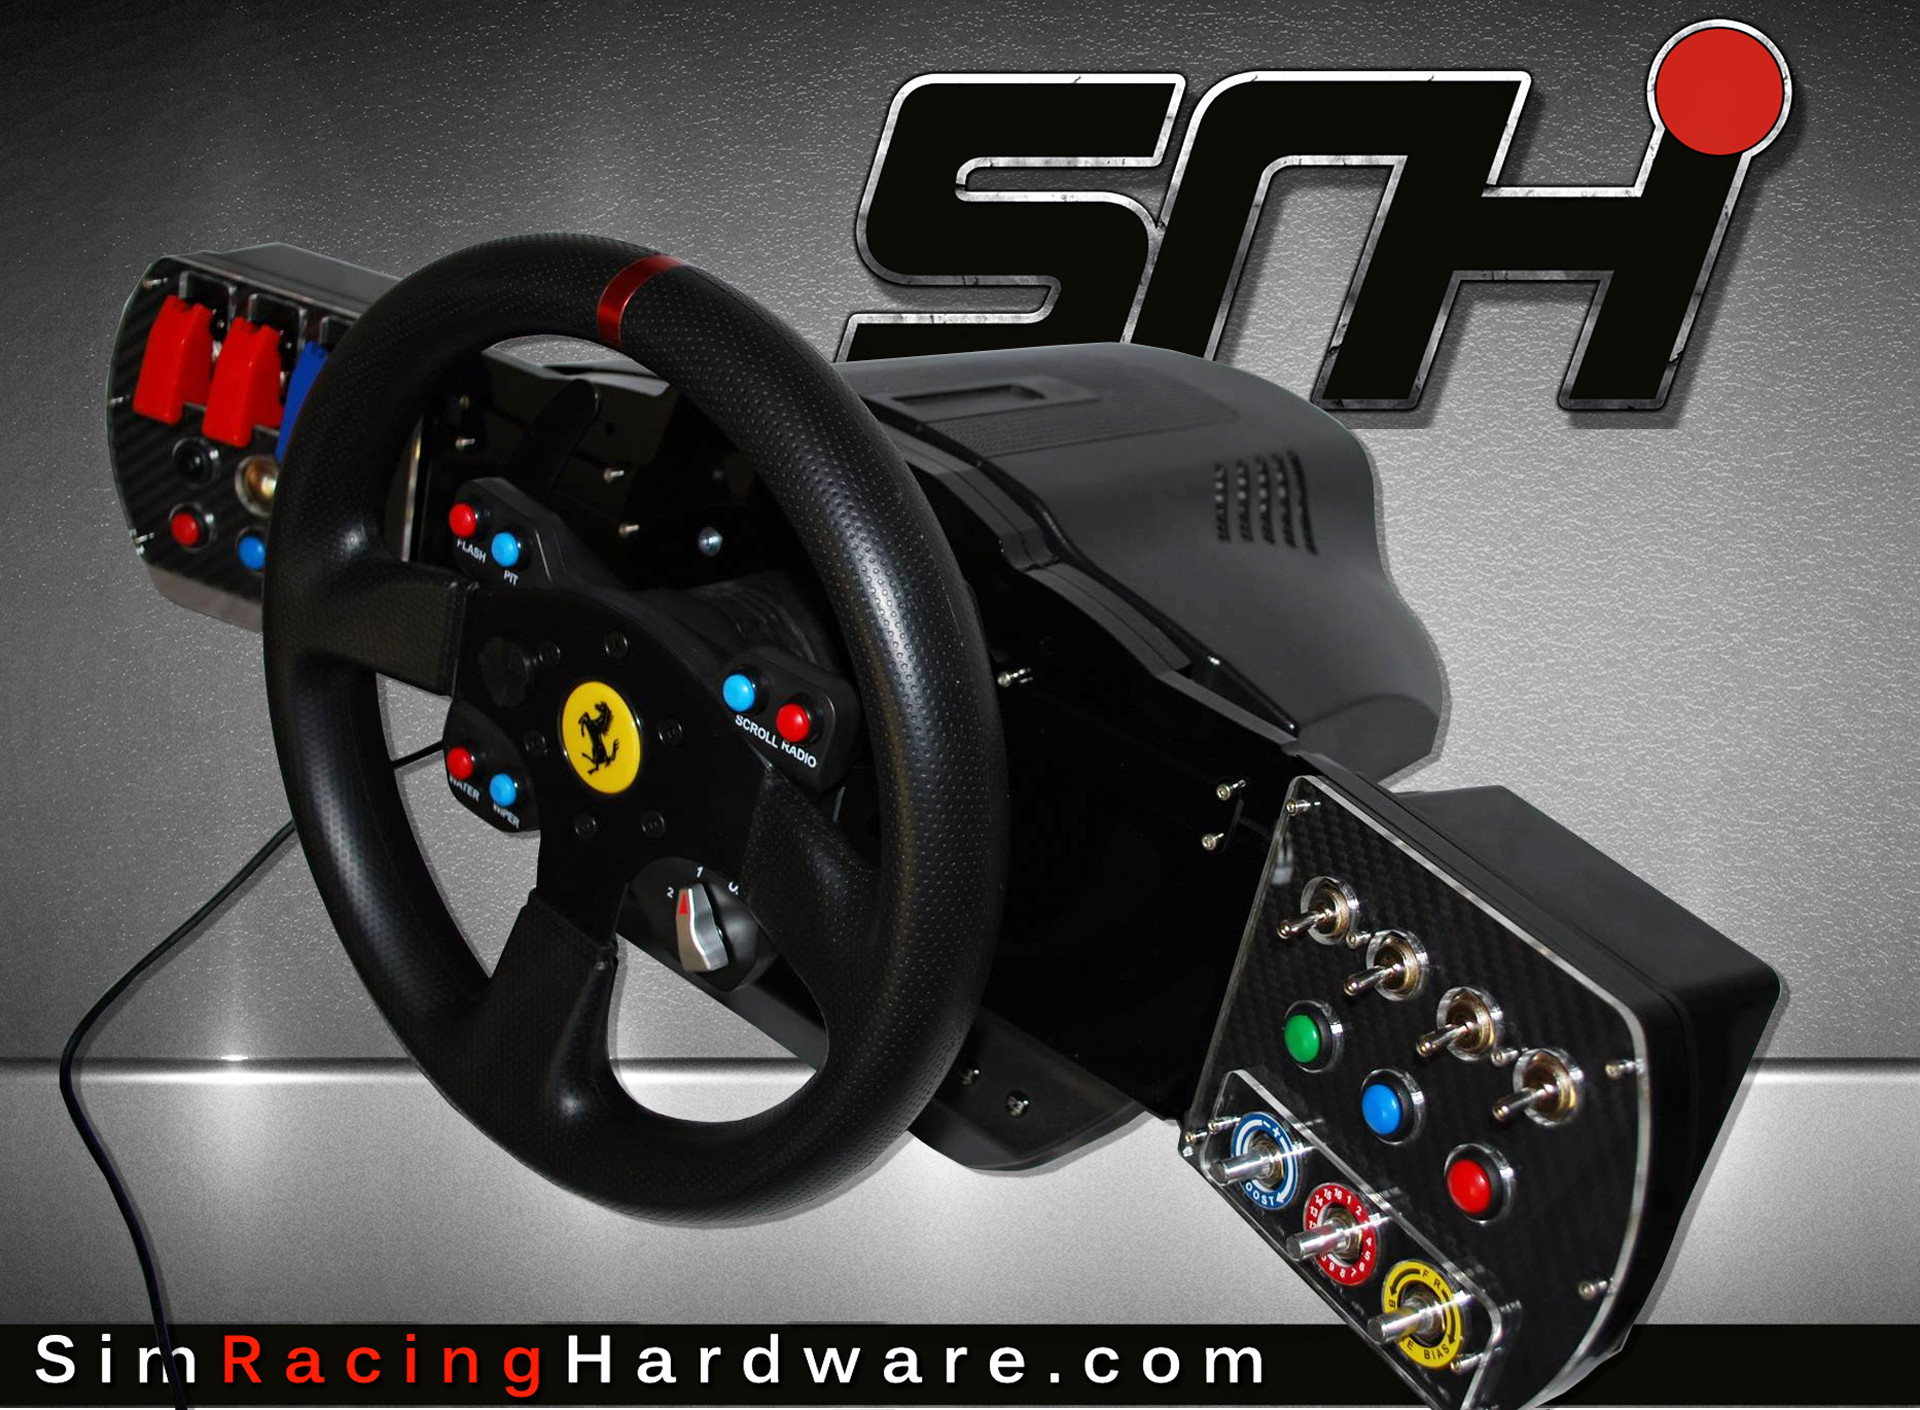 t500 dash preview sim racing hardwaresim racing hardware. Black Bedroom Furniture Sets. Home Design Ideas